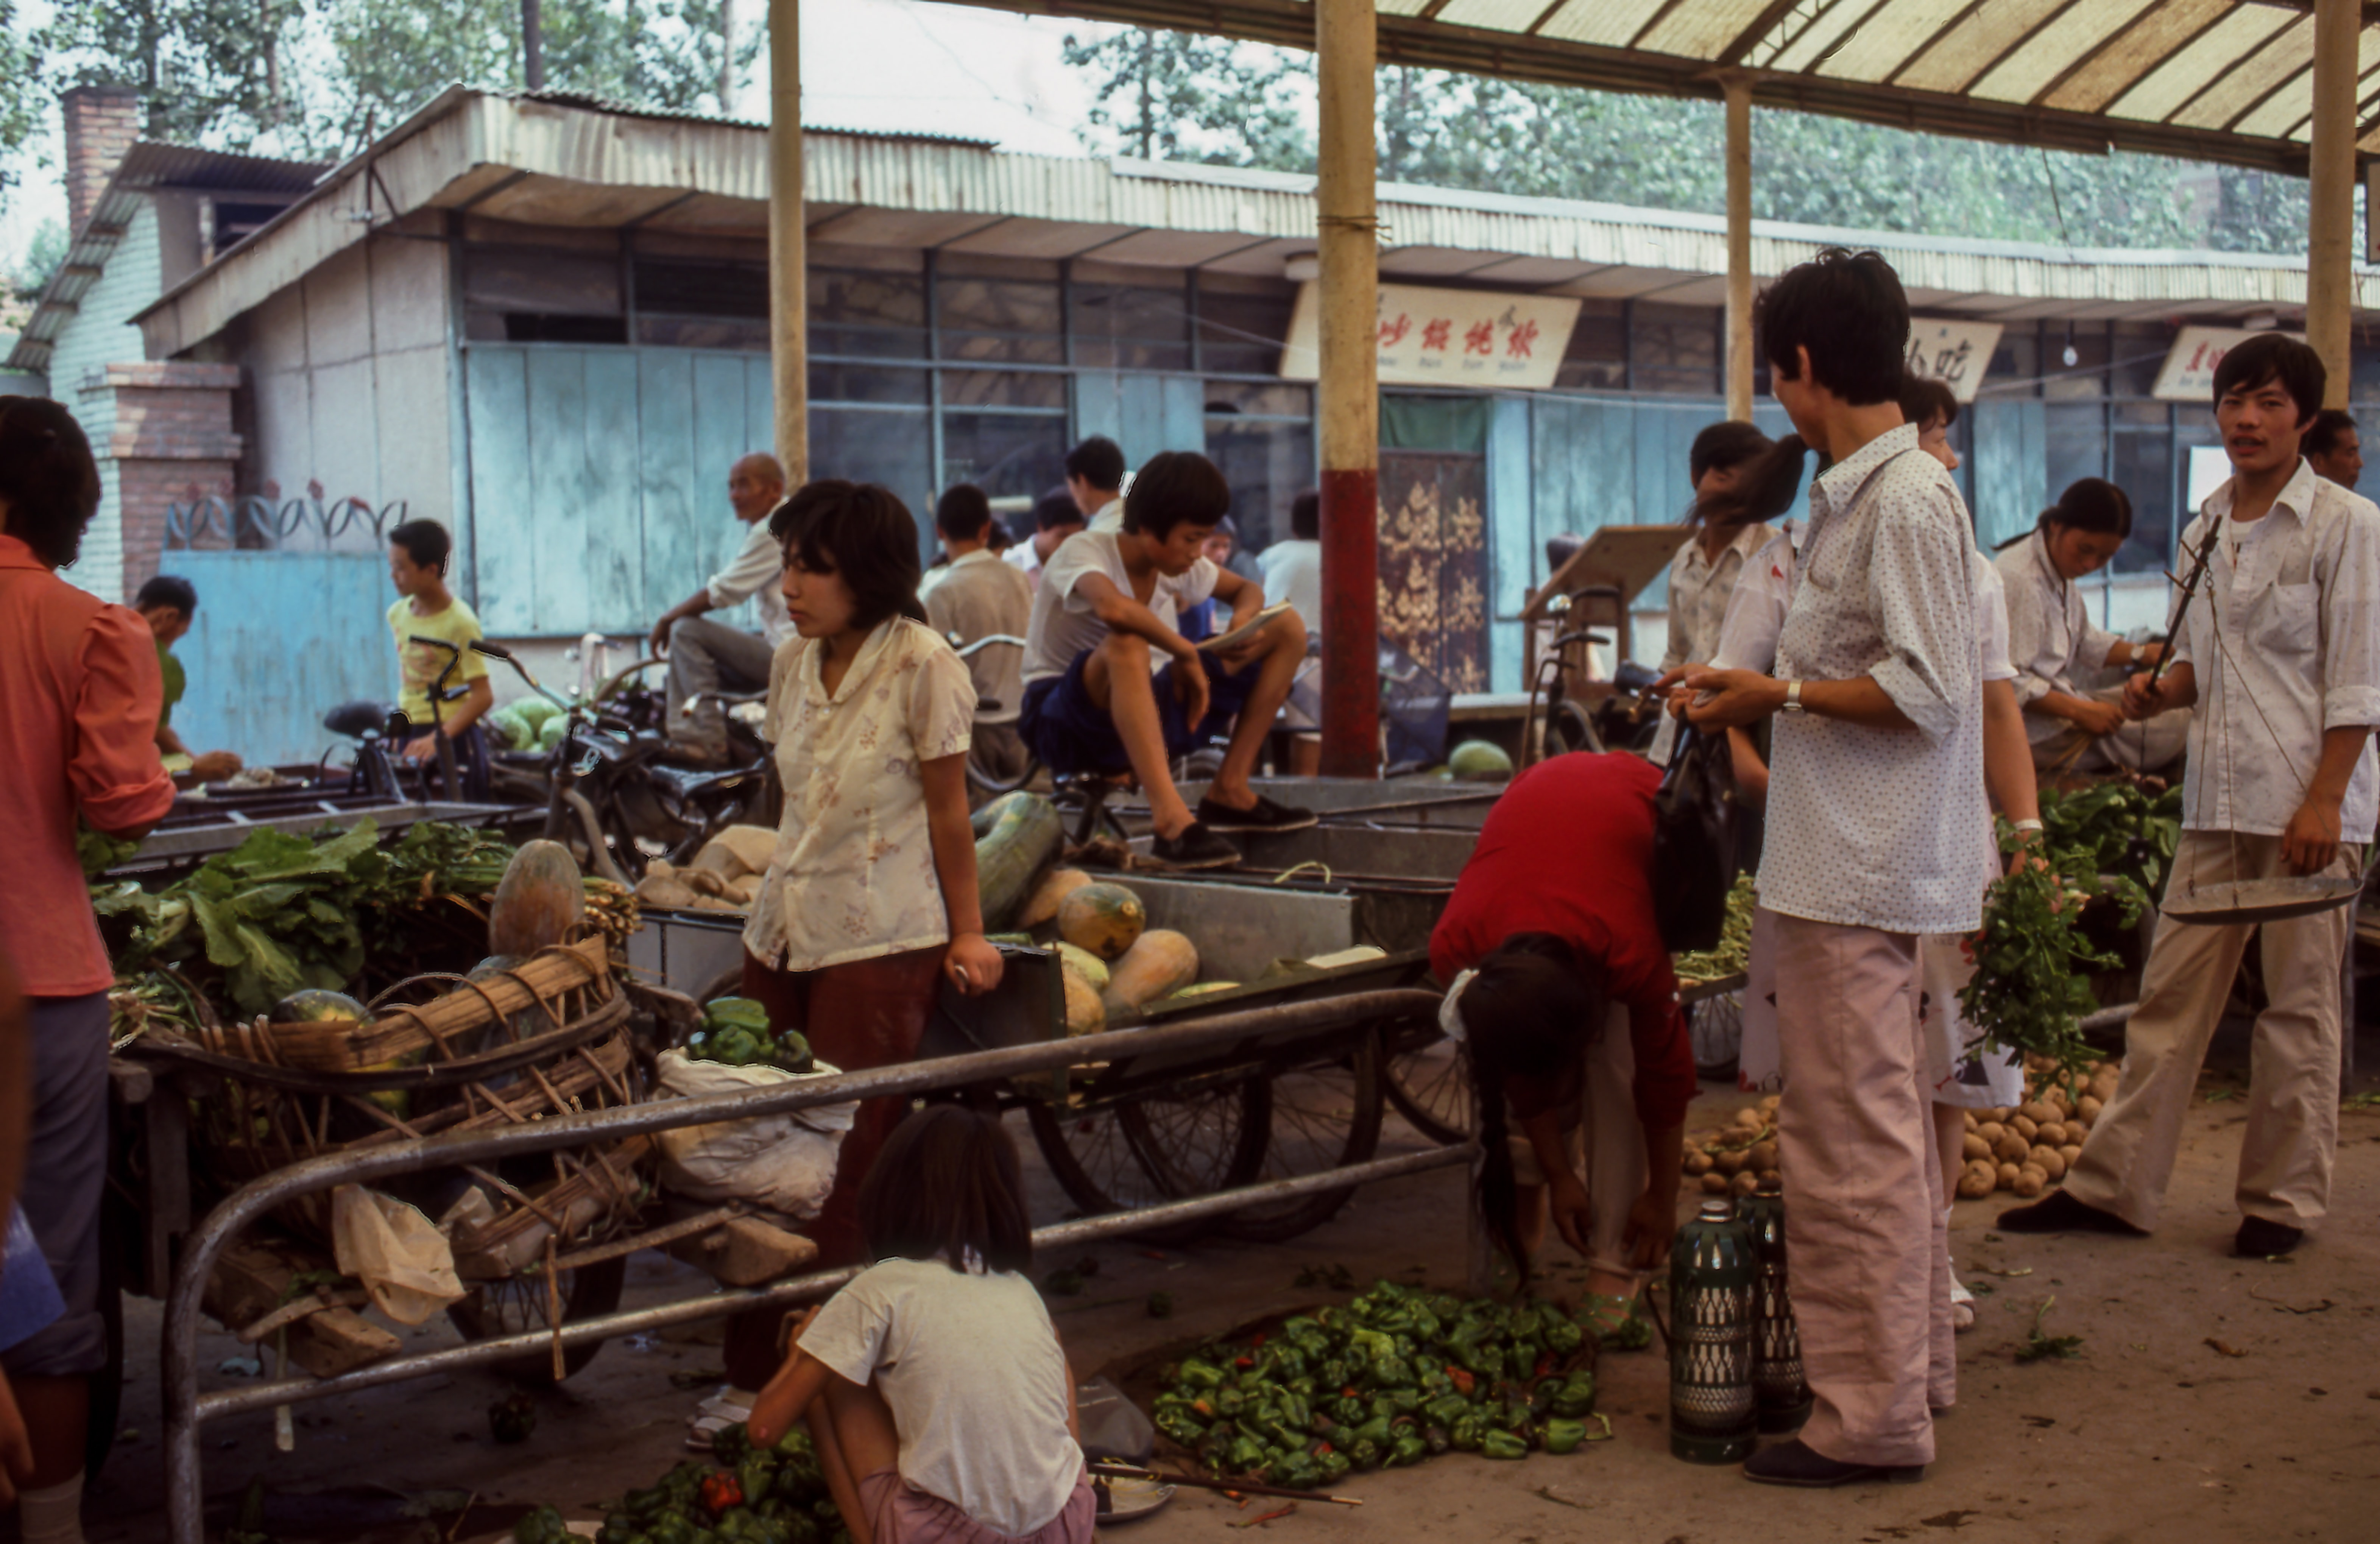 An Asian food market where many people are selling fruits and vegetables